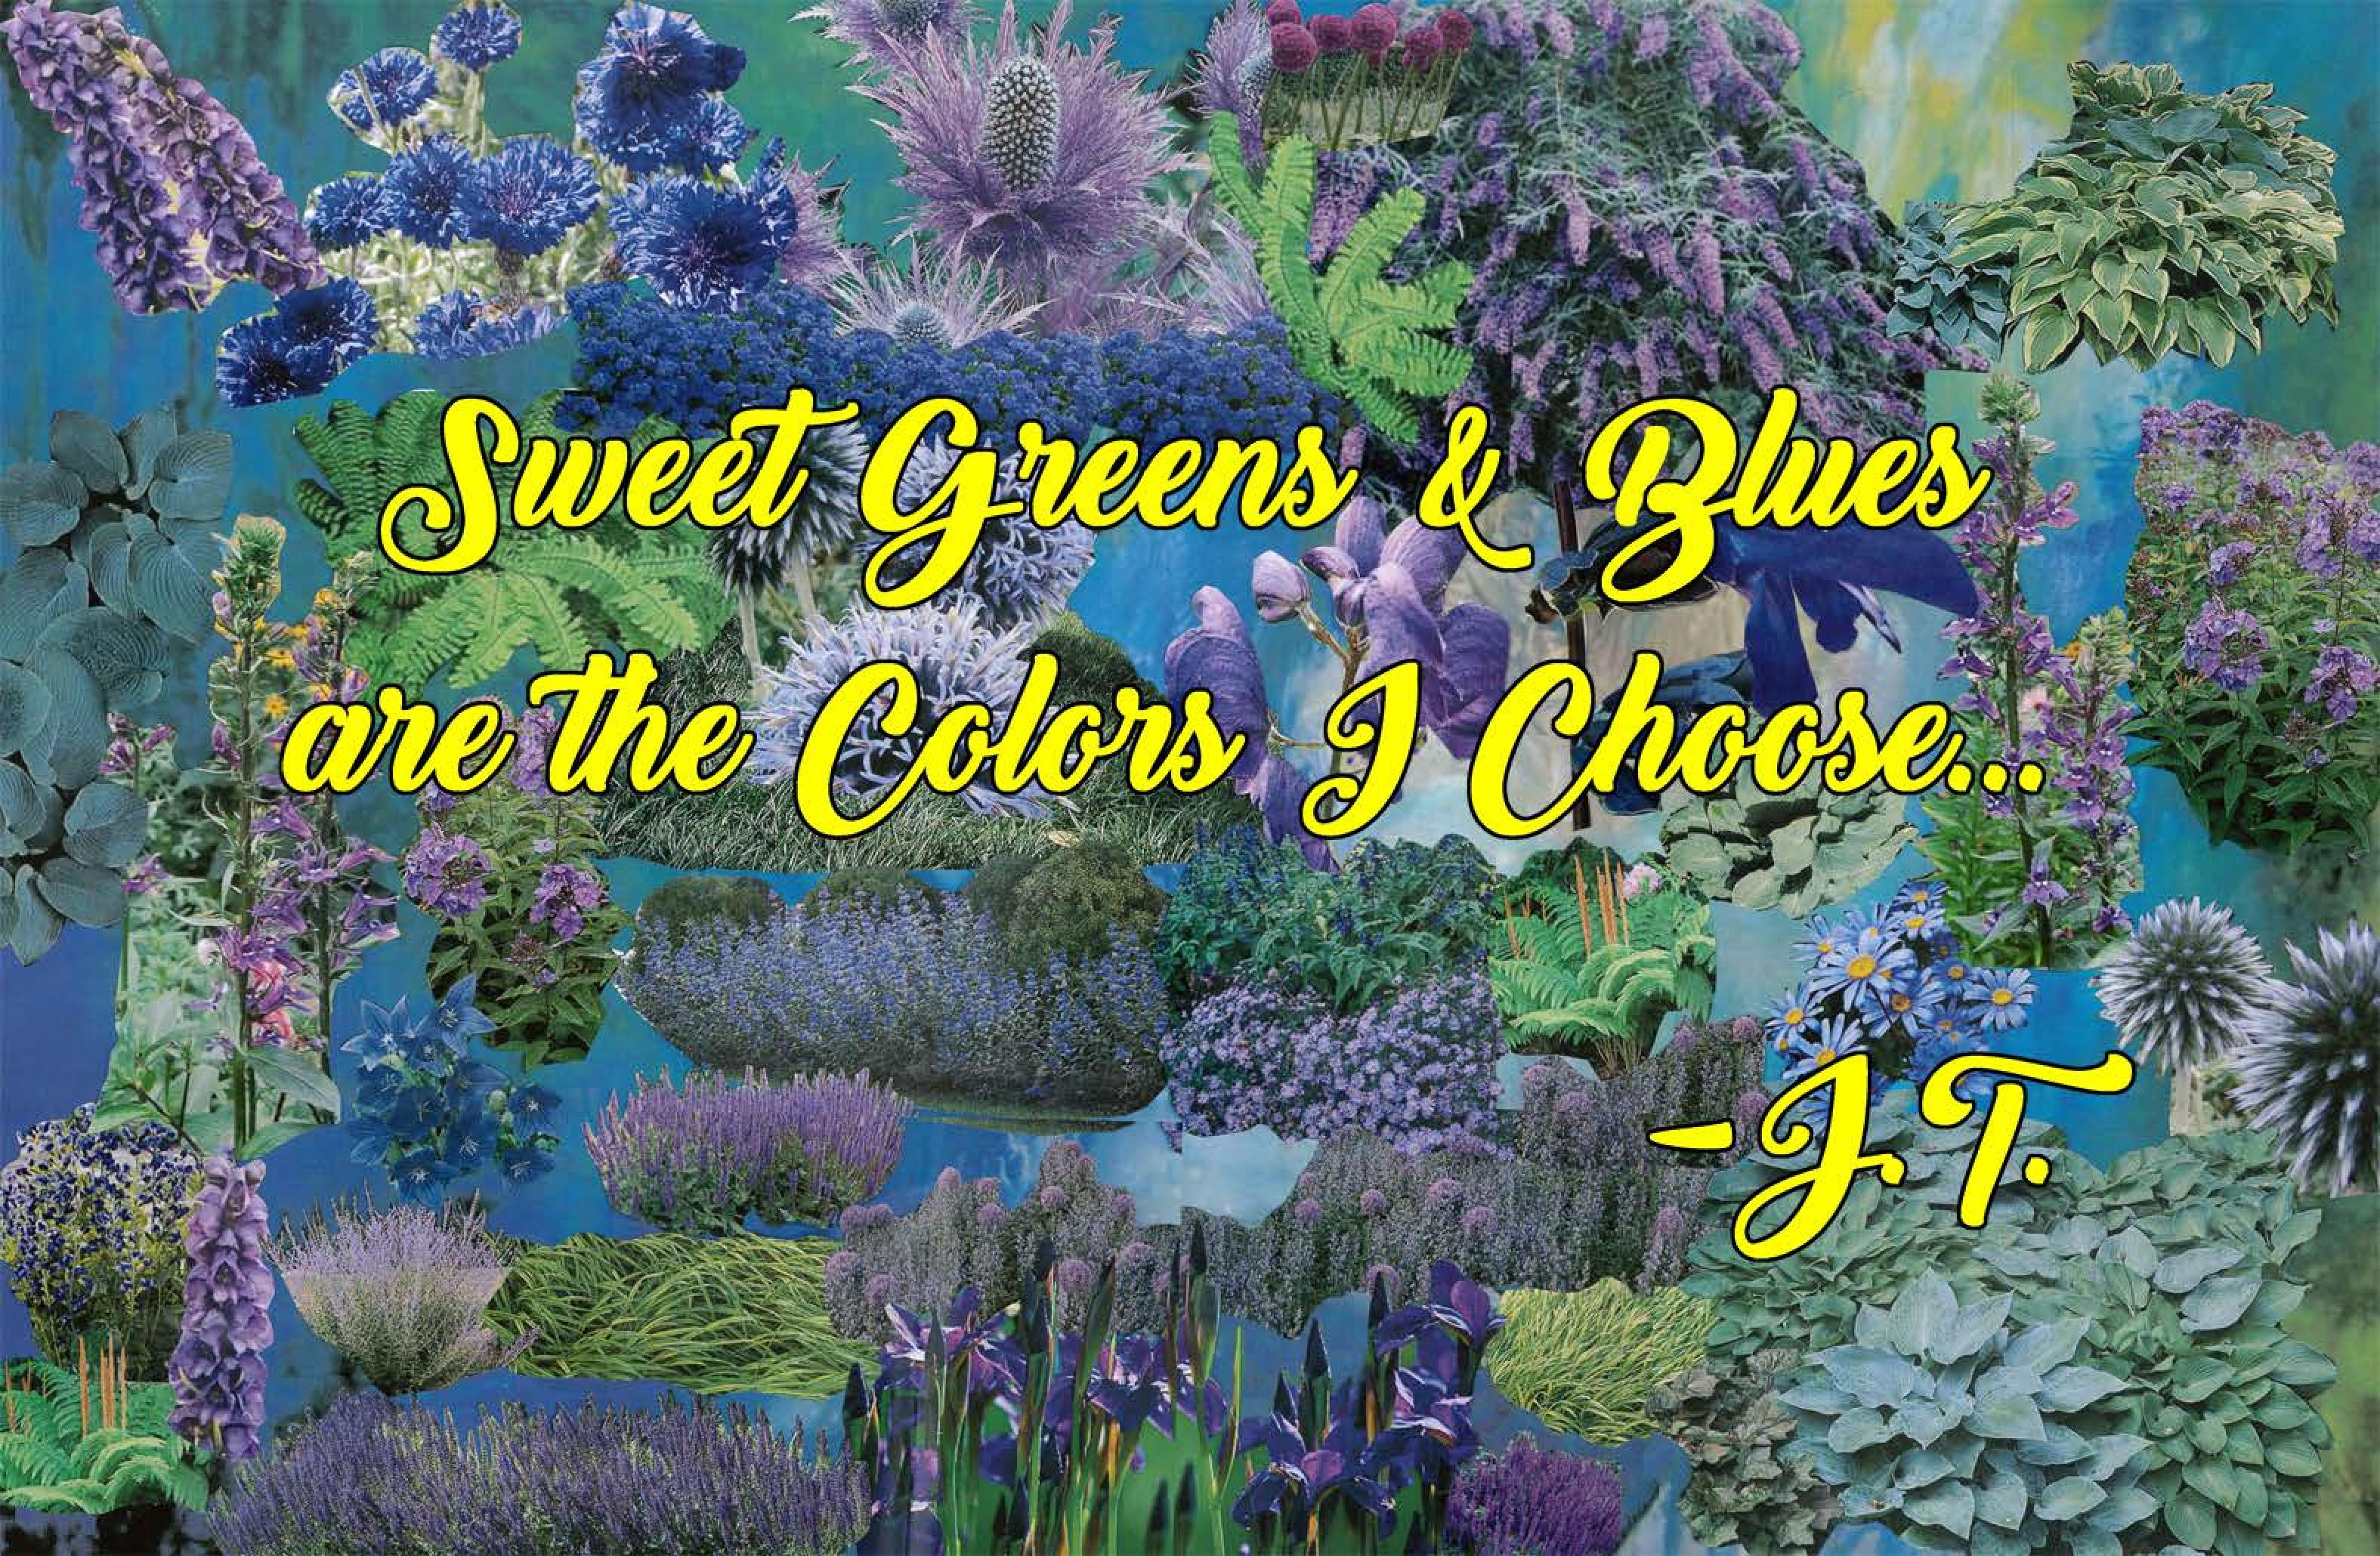 Tailoring Your Garden with Deep Greens and Blues